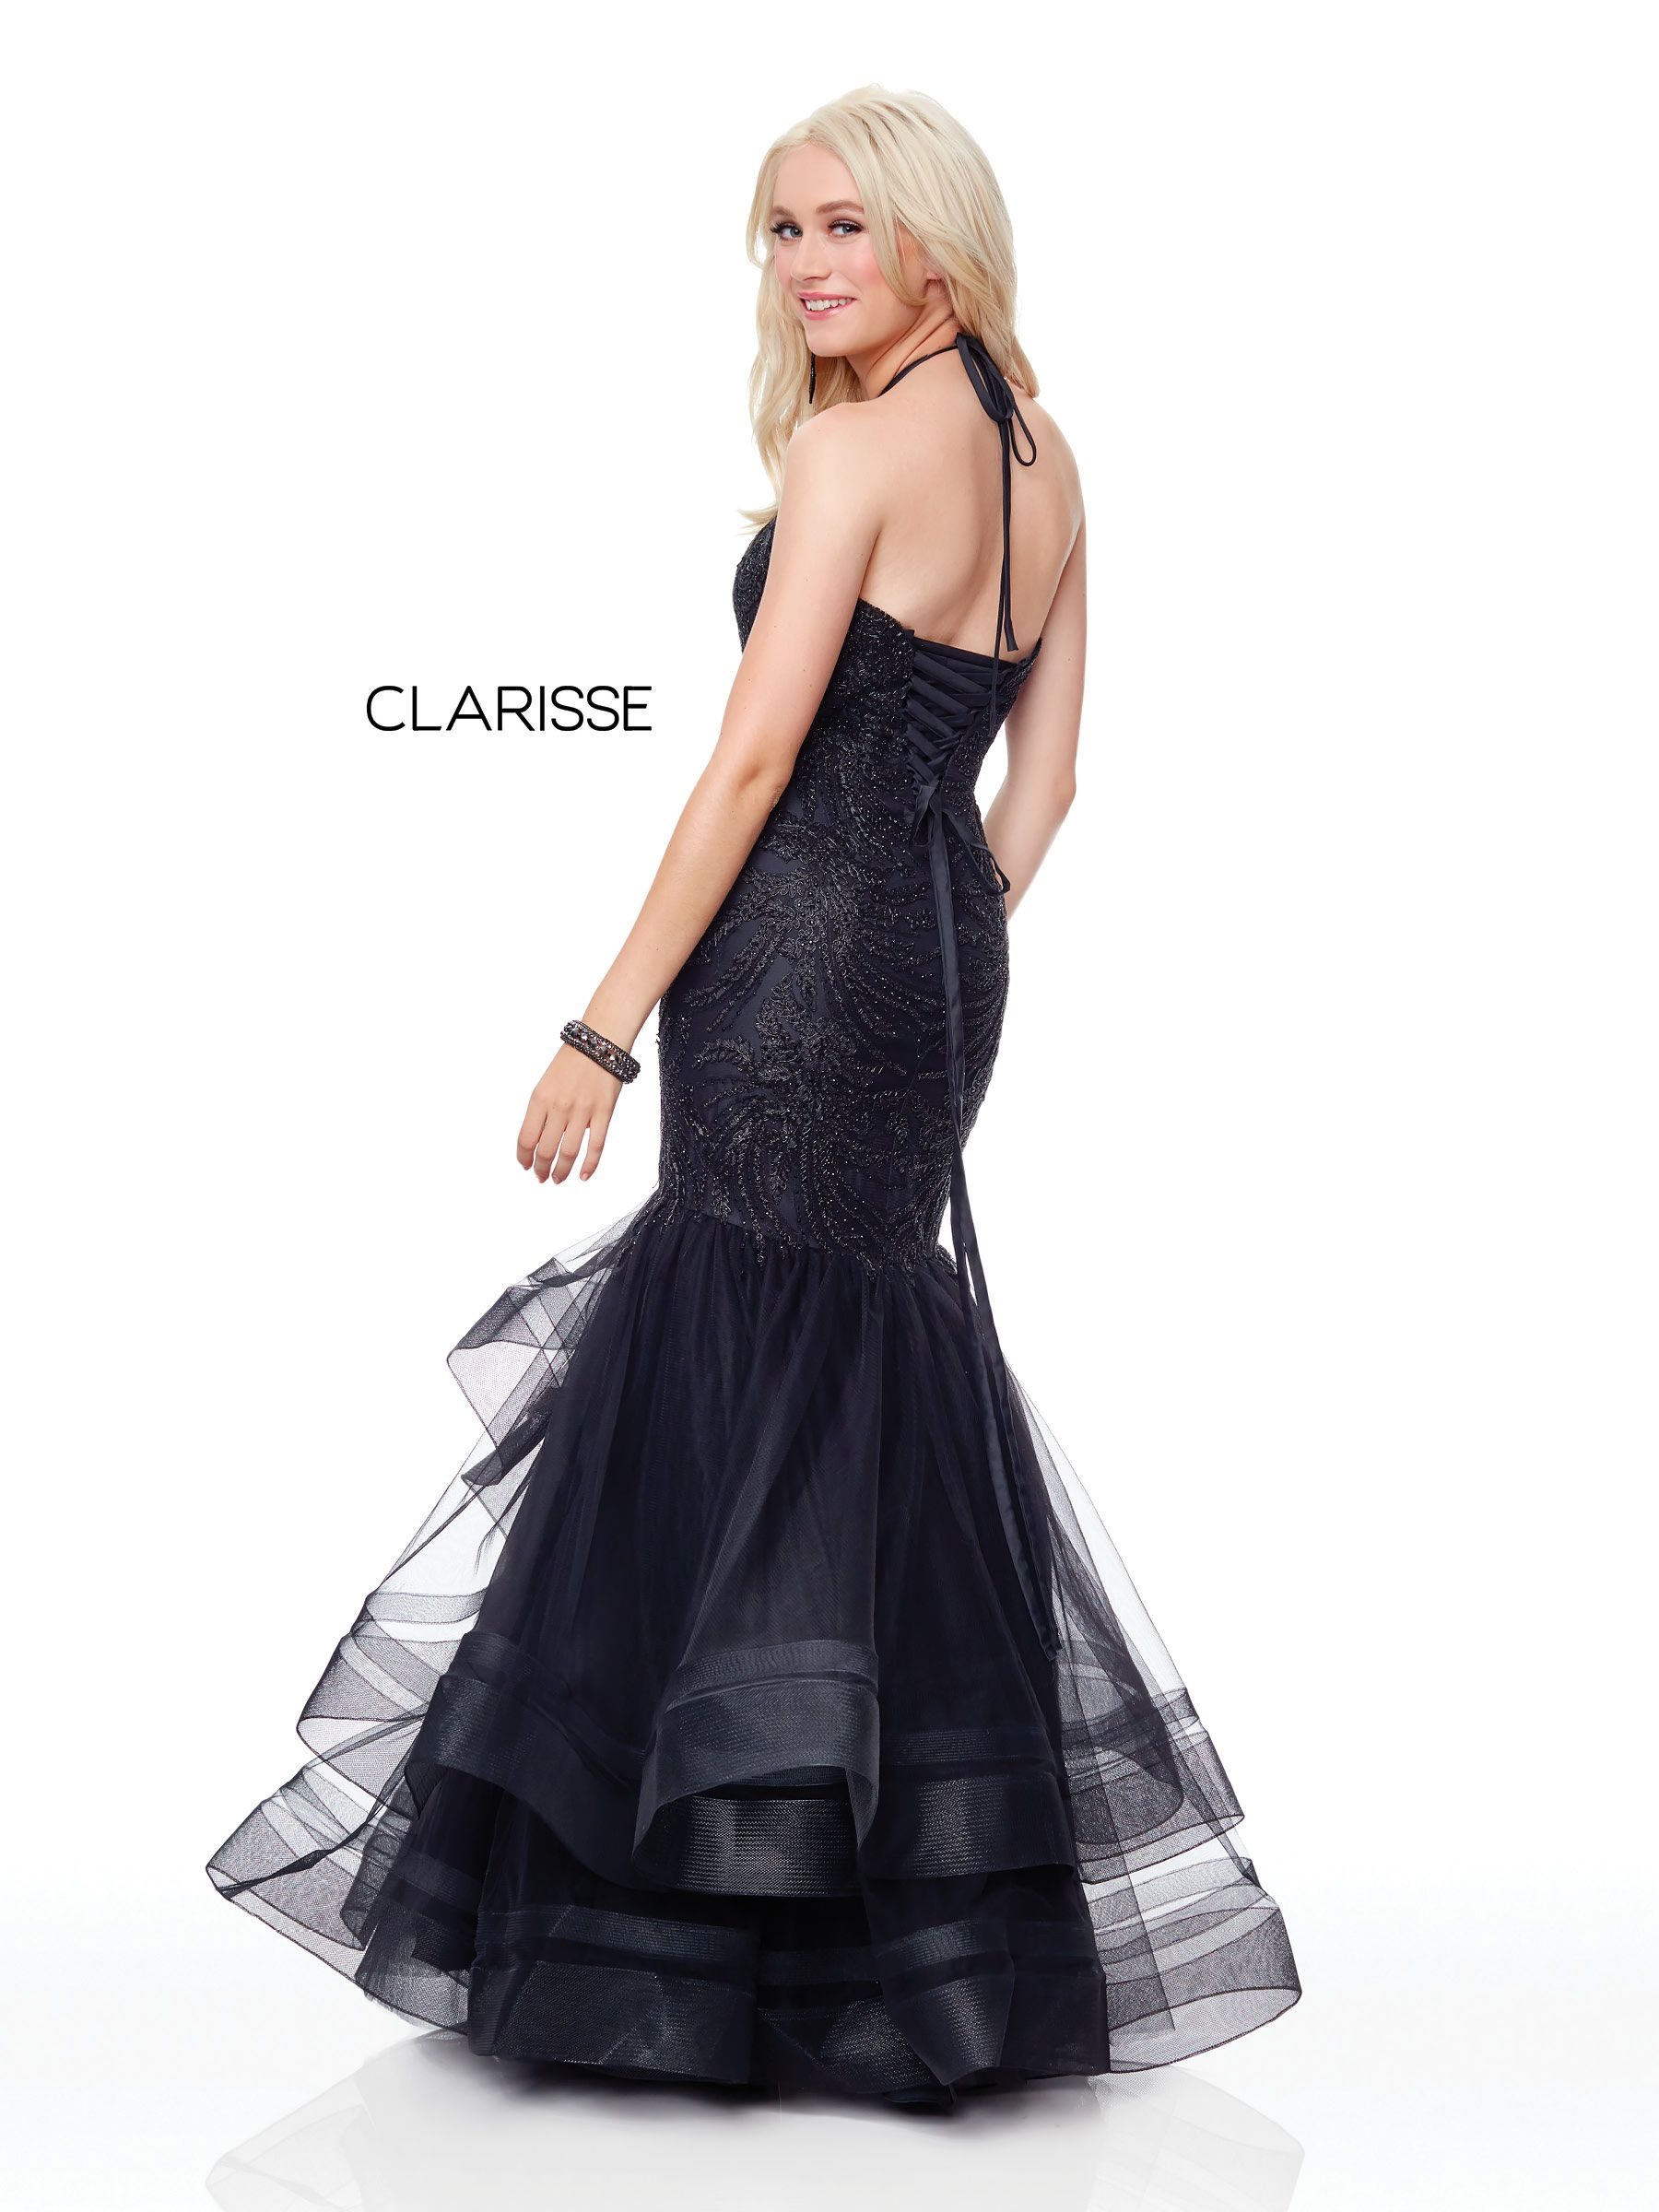 28+ Black fit and flare prom dress inspirations